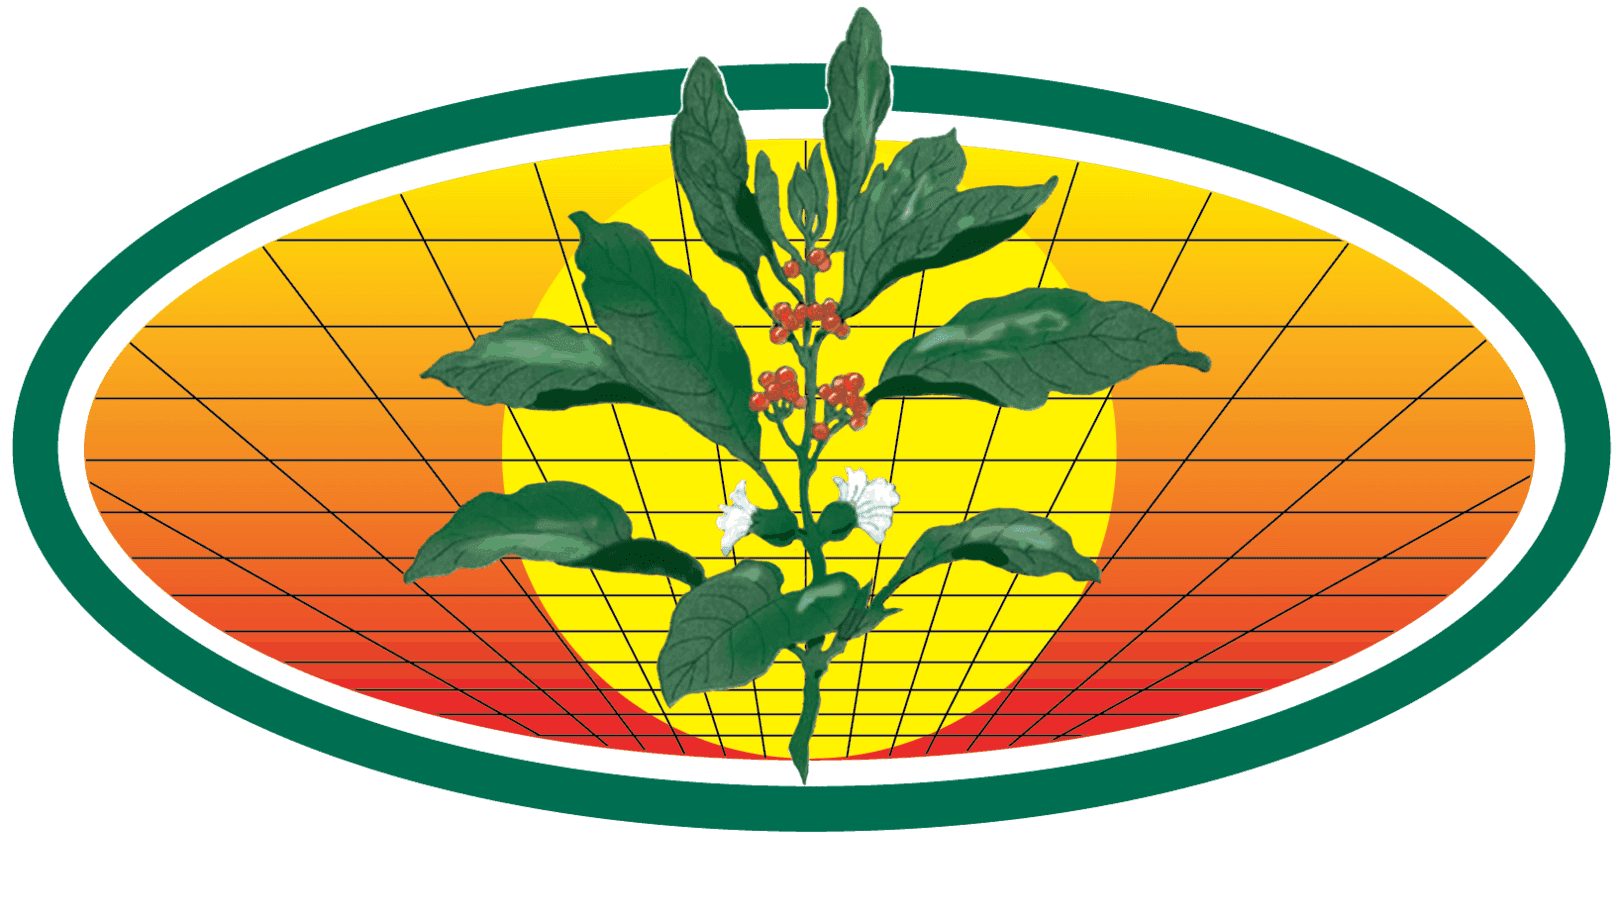 American Nettings & Fabric